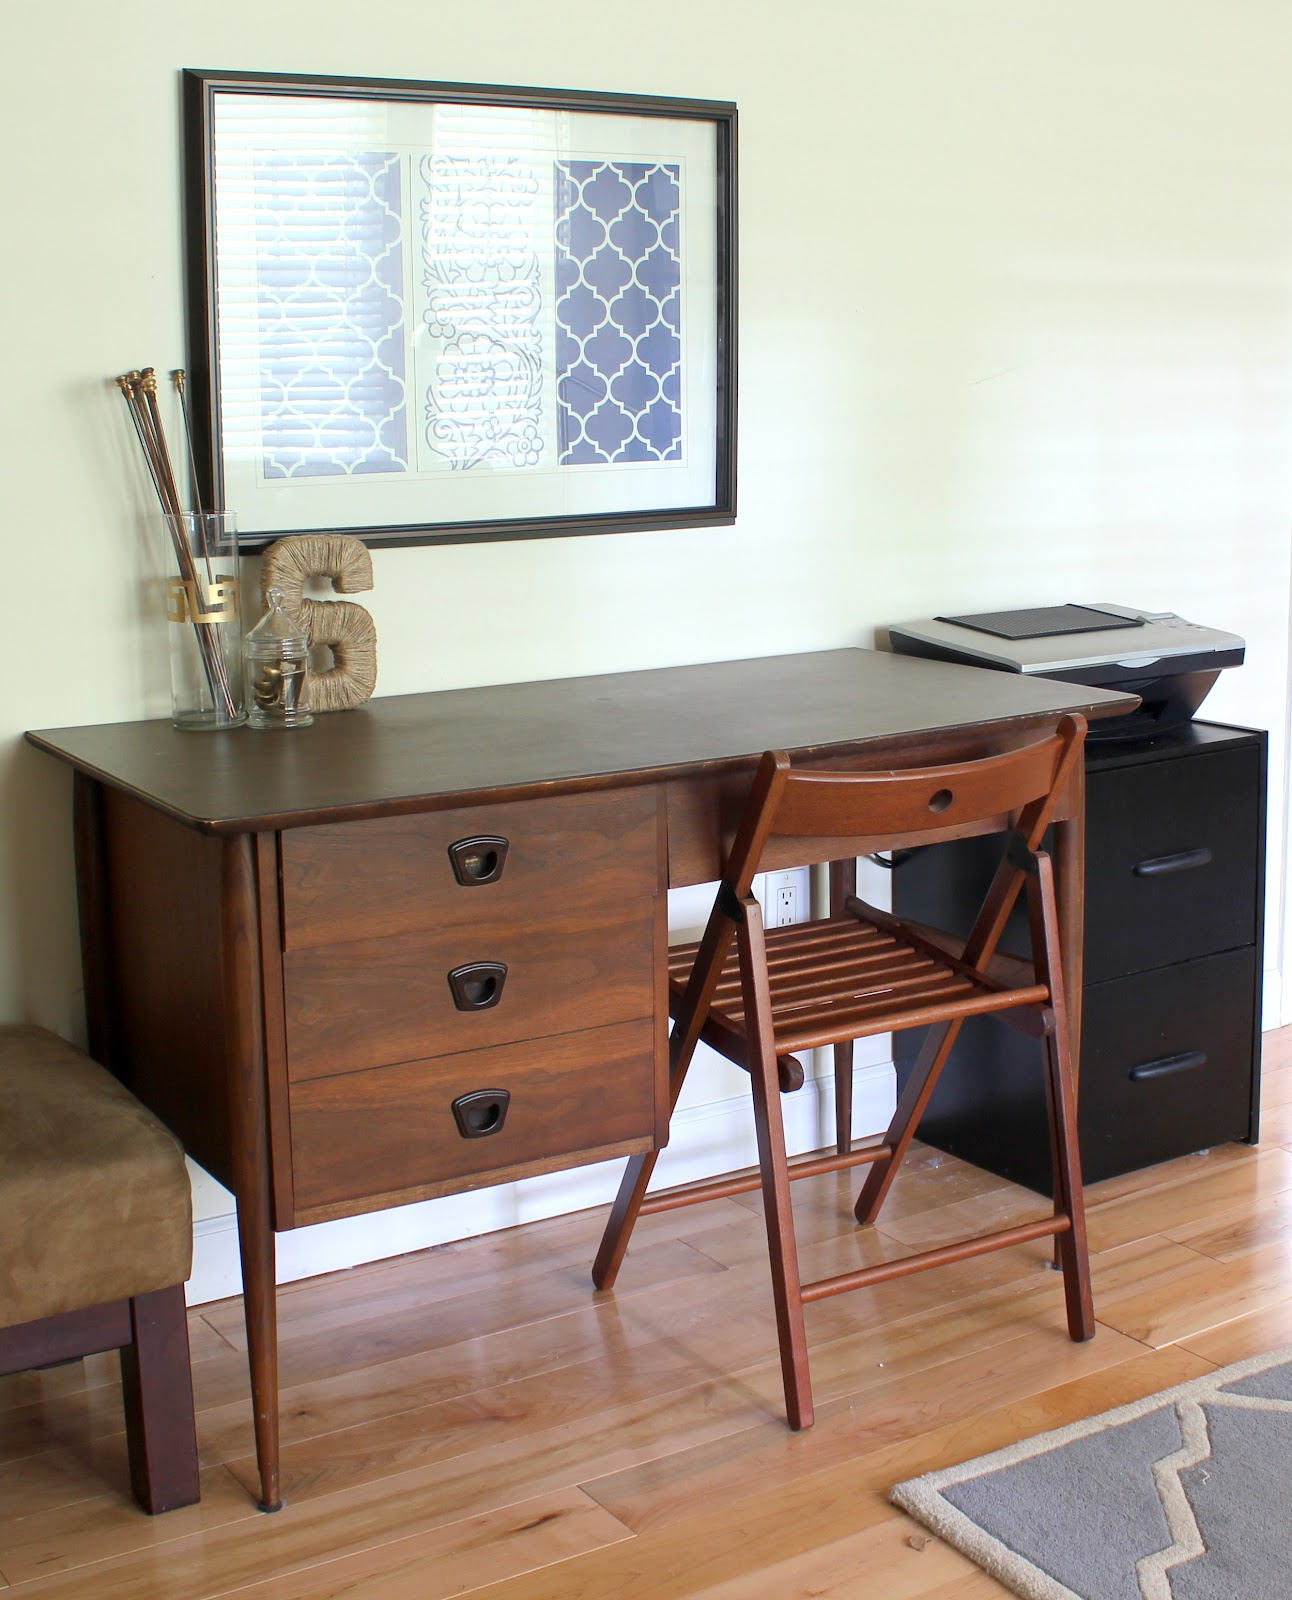 Mid-Century Desk Bargain Craigslist Find - Erin Spain